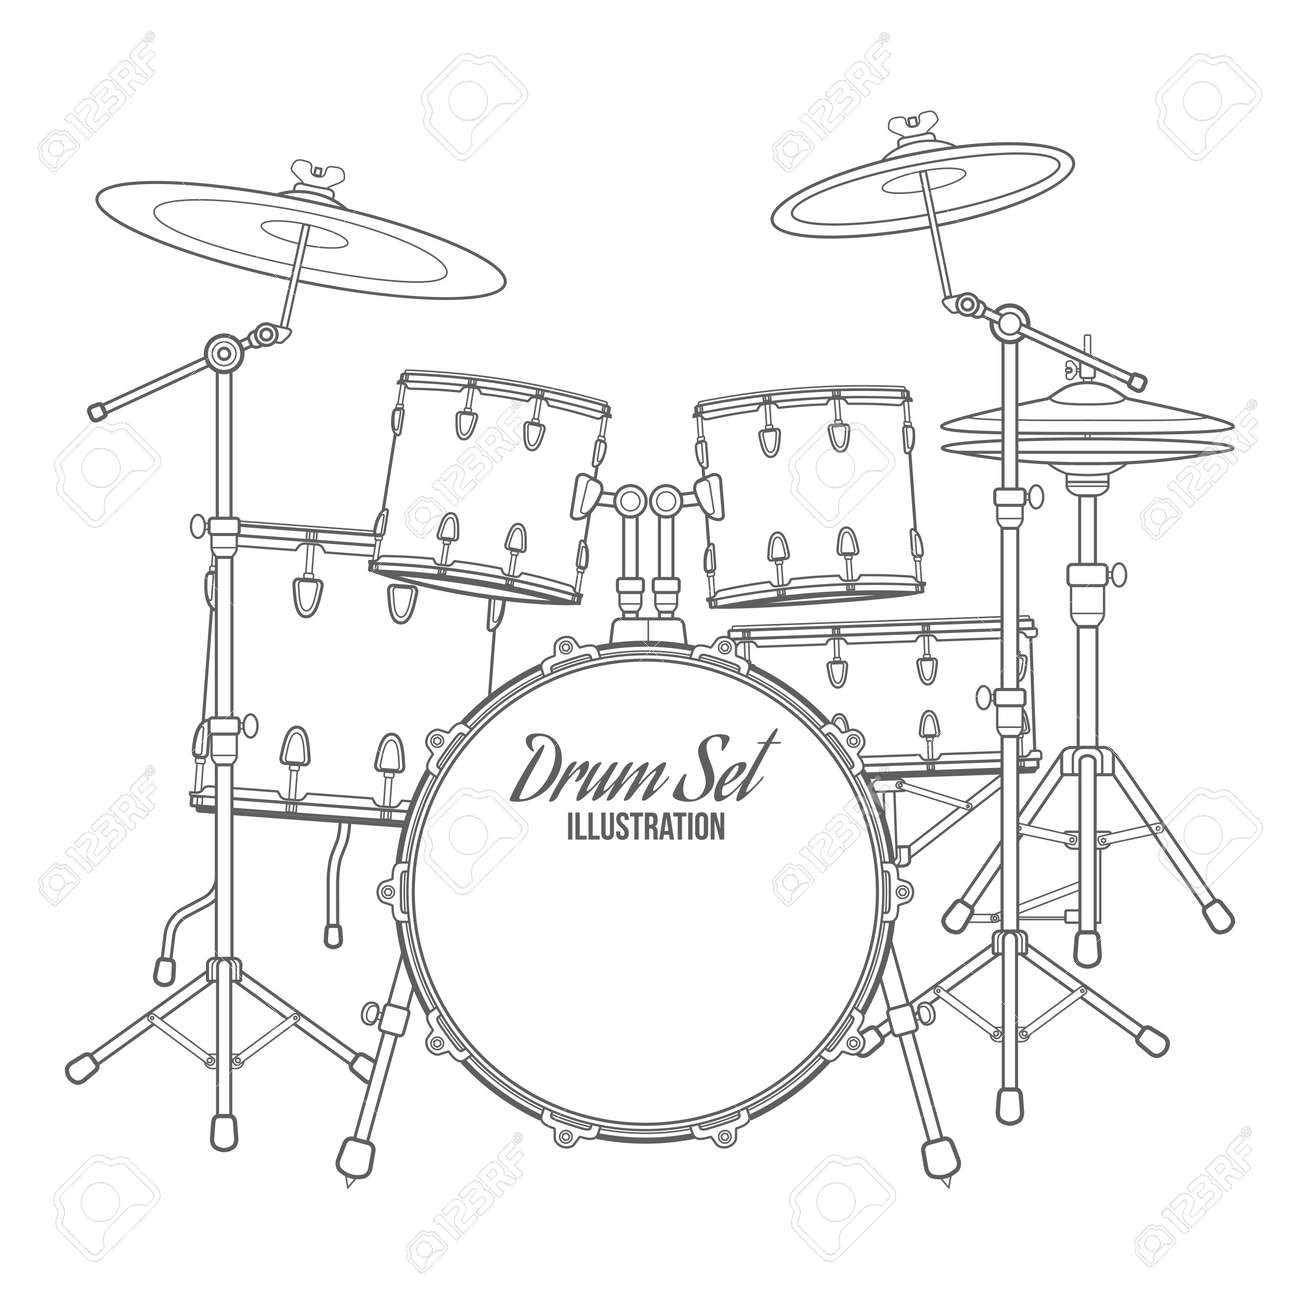 Vector Dark Outline Drum Set On White Background Bass Tom Ride Cymbal Crash Hi